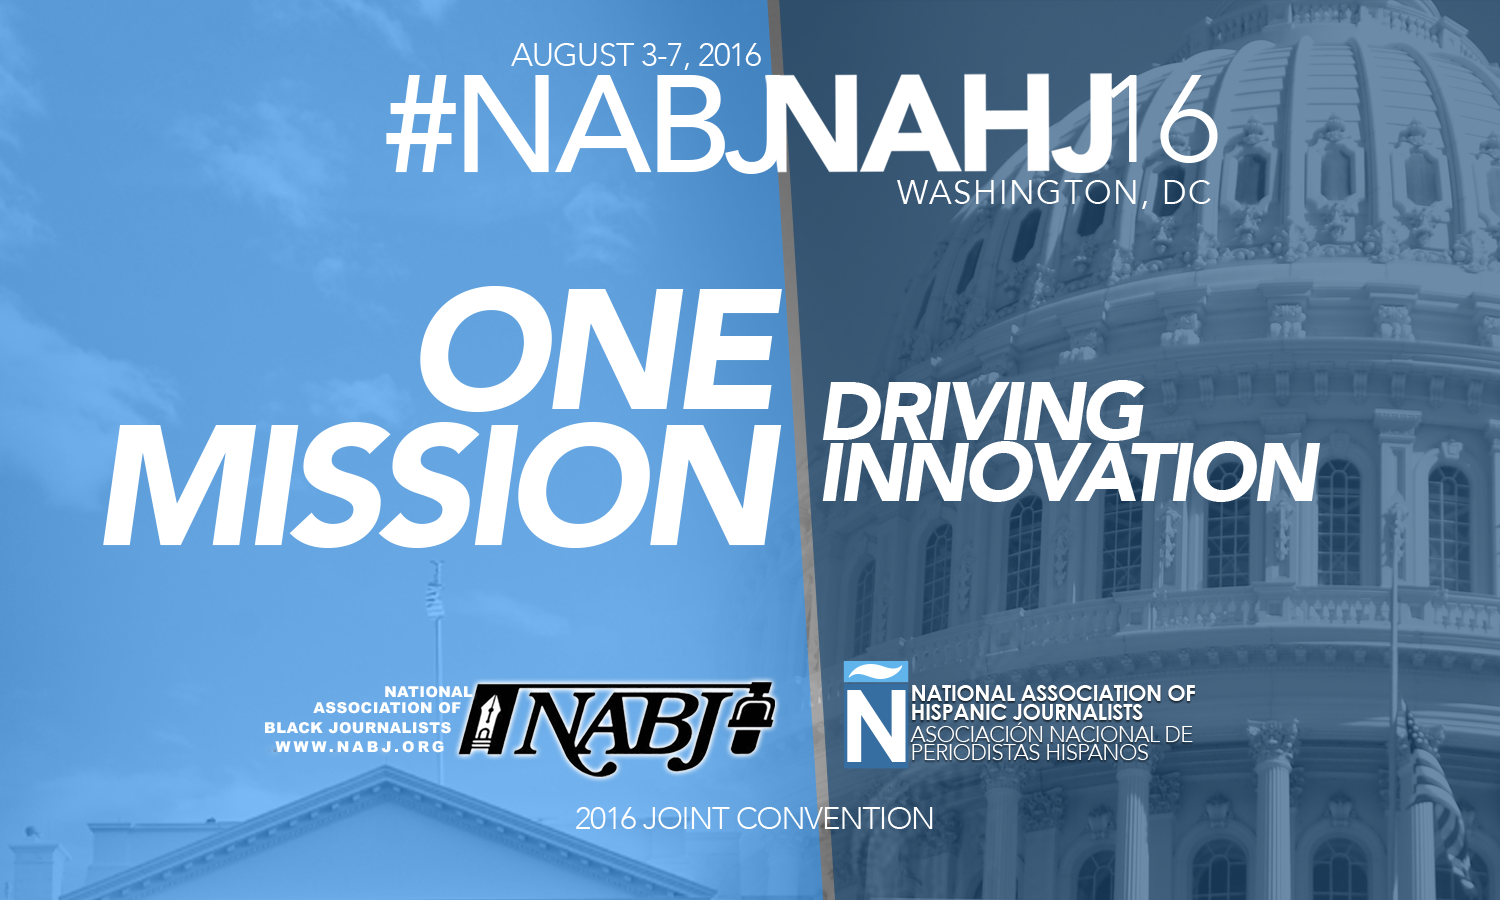 NABJ Convention 2016